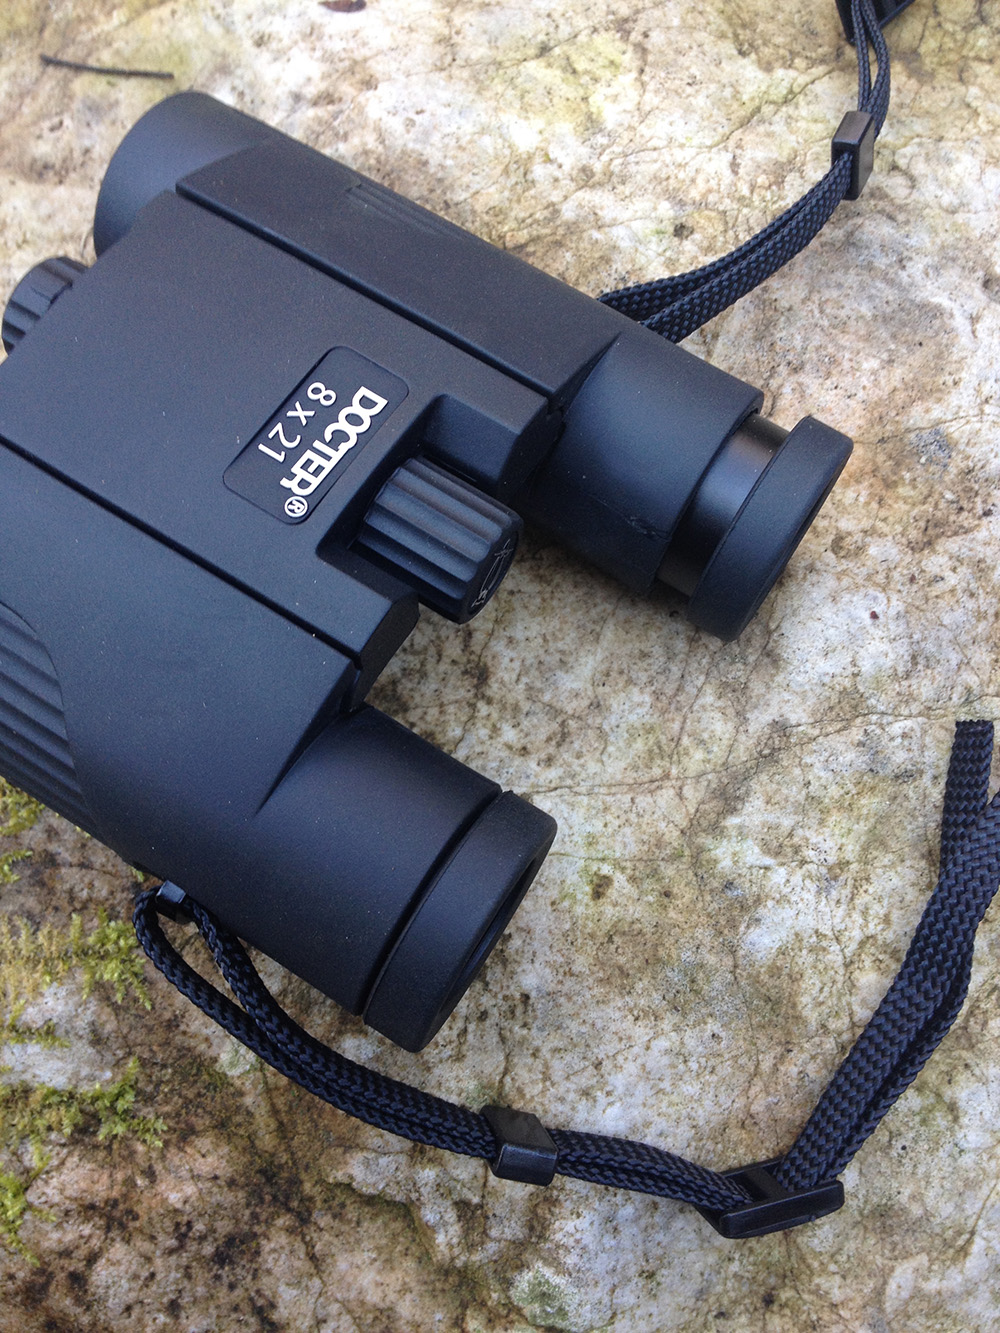 Docter compact 8x21